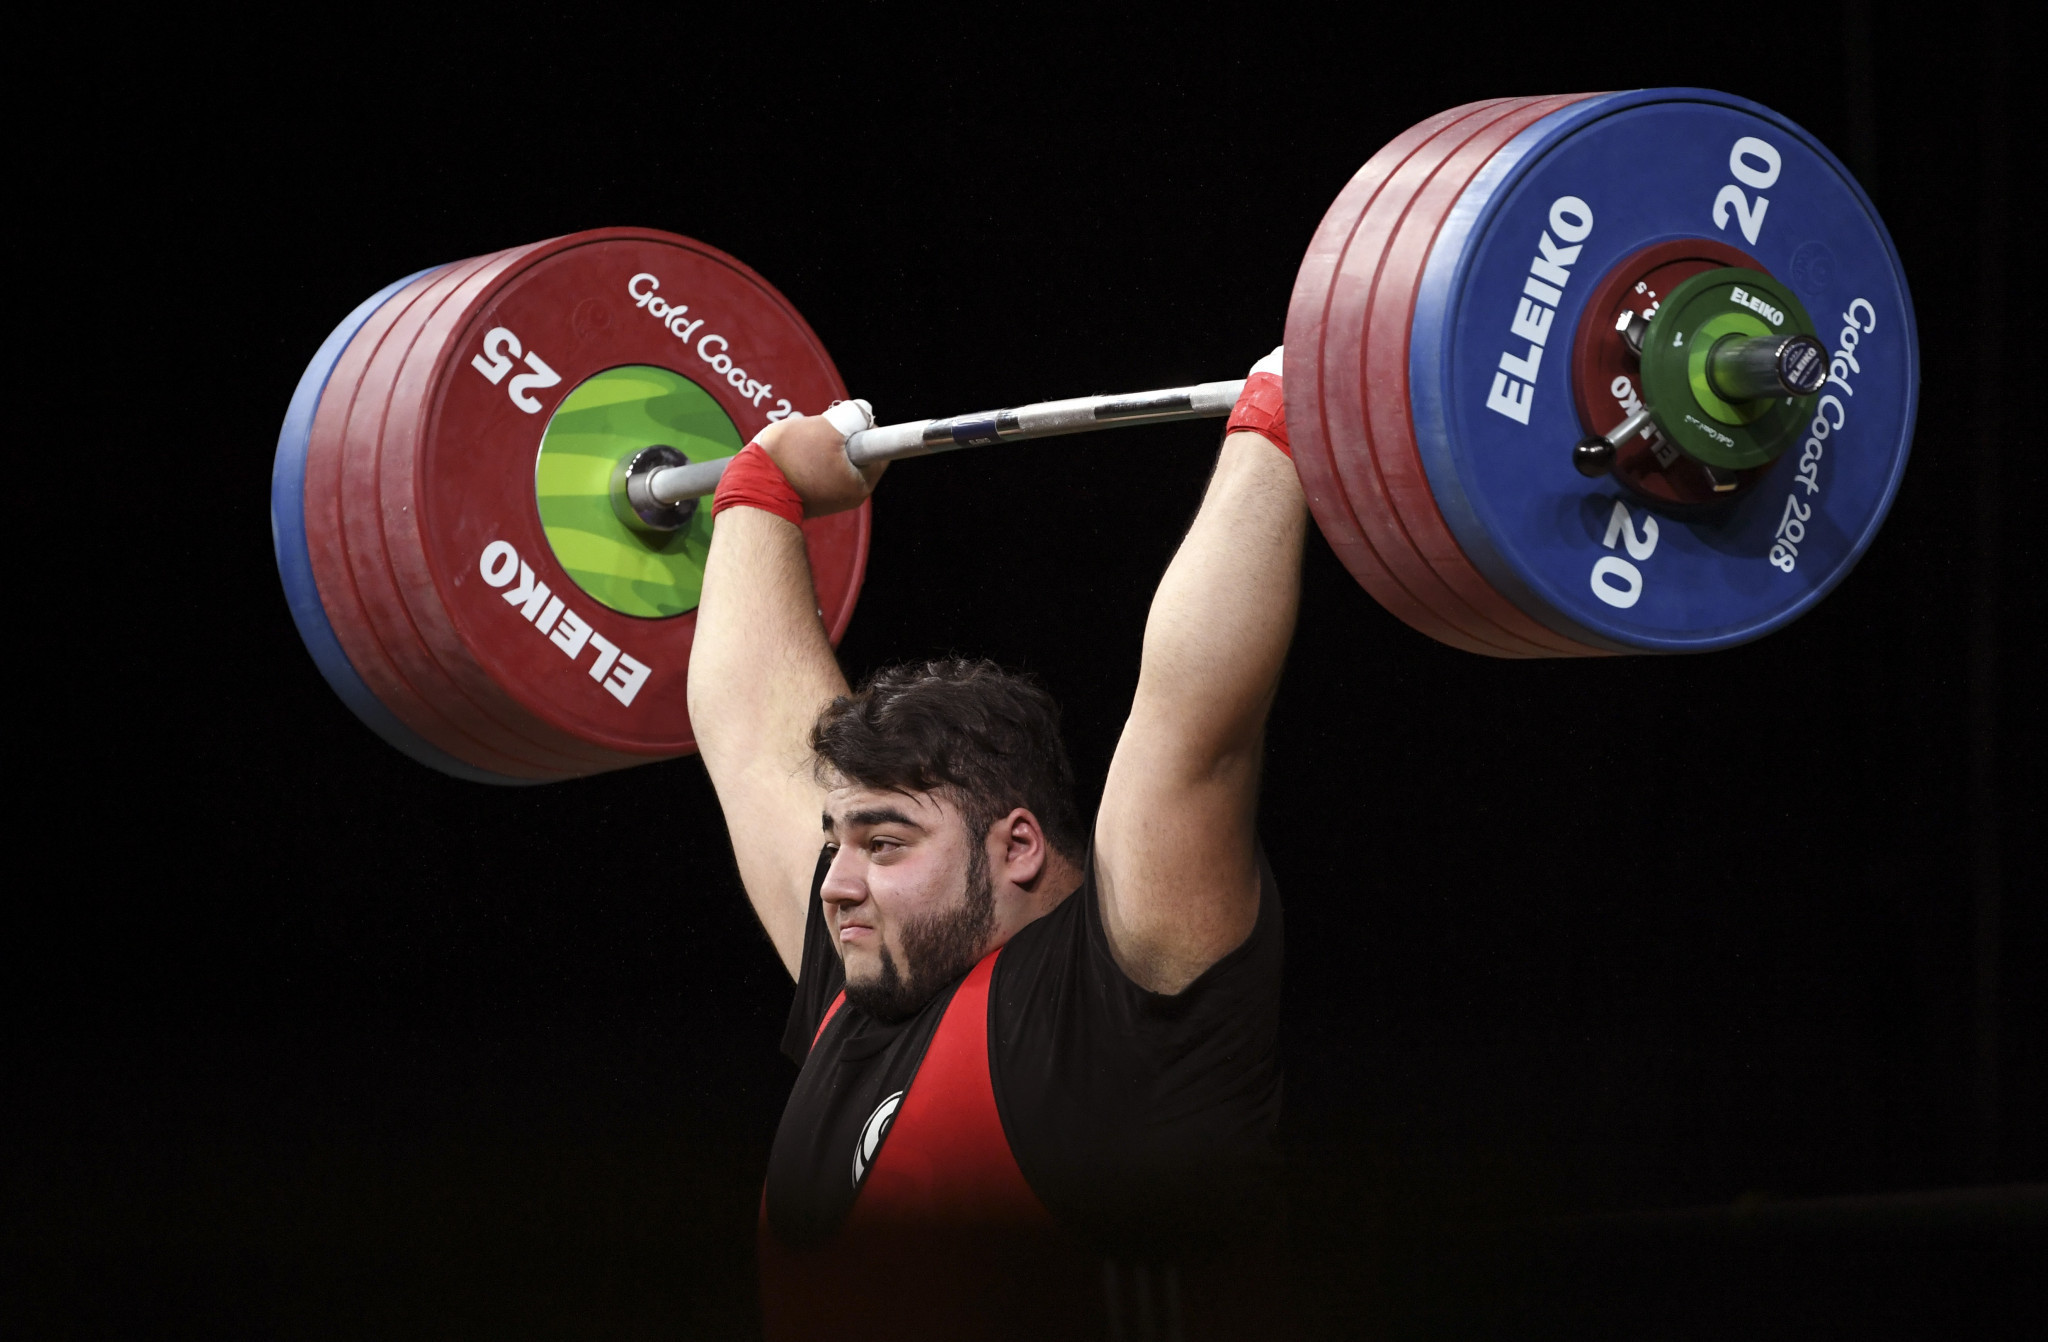 Pakistan's Muhammad Nooh Dastgir Butt was the overall bronze medallist in the men's over-105kg category ©Getty Images